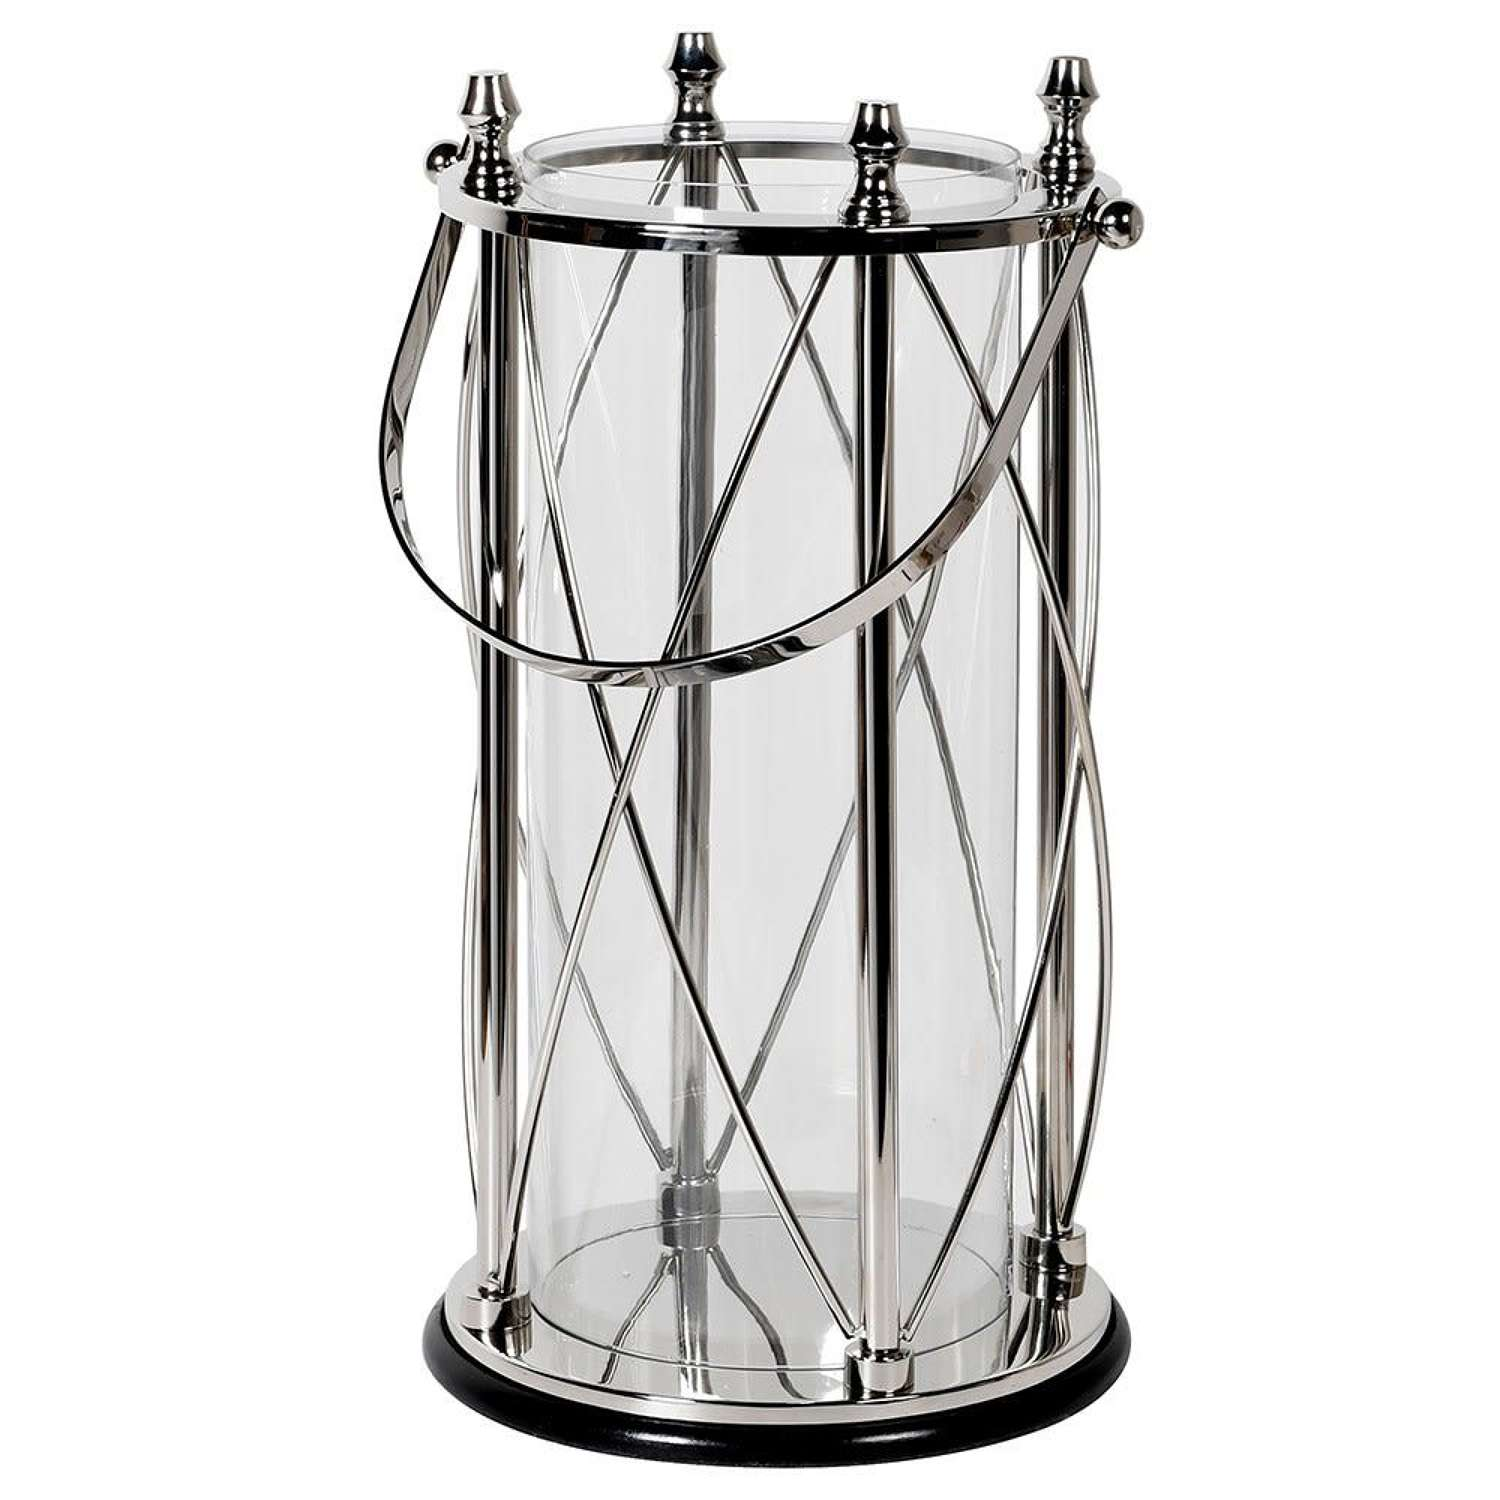 Large Stainless Steel & Glass Luxury Candle Lantern